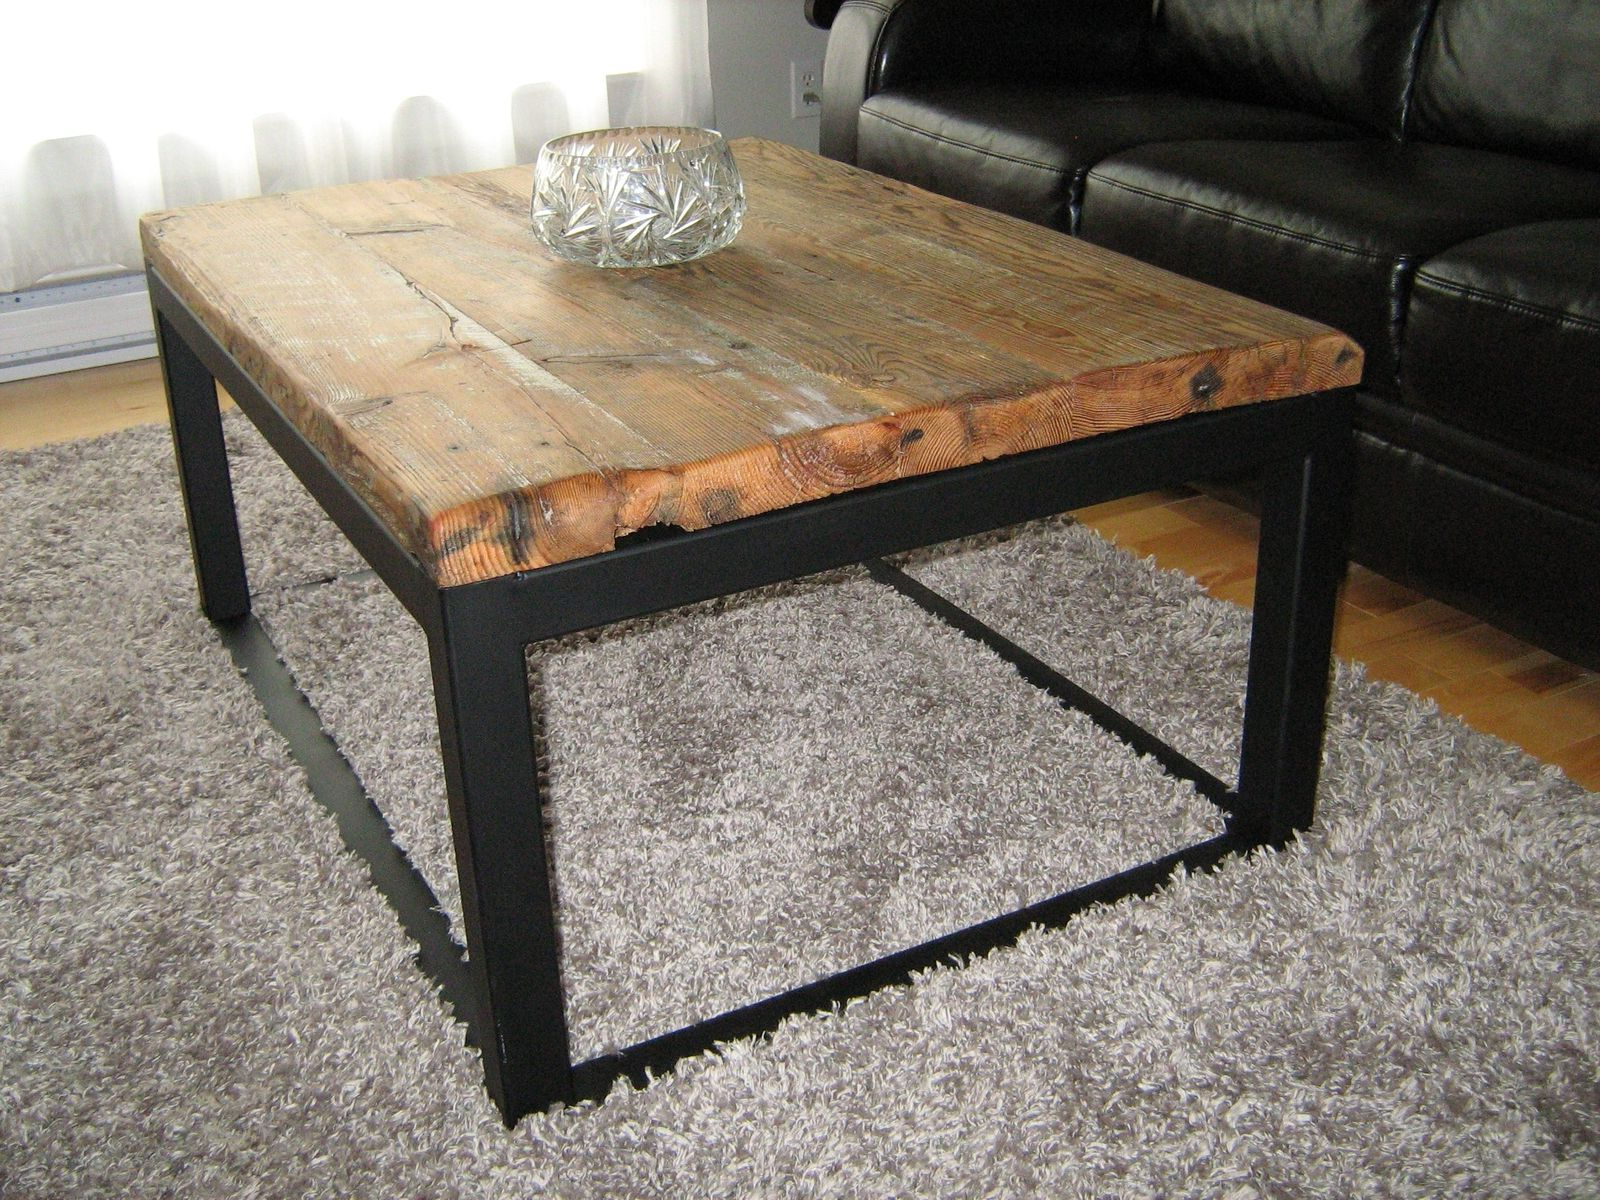 Iron Wood Coffee Tables With Wheels Within Well Known Wood And Metal Coffee Table Awesome – Thelightlaughed (View 14 of 20)